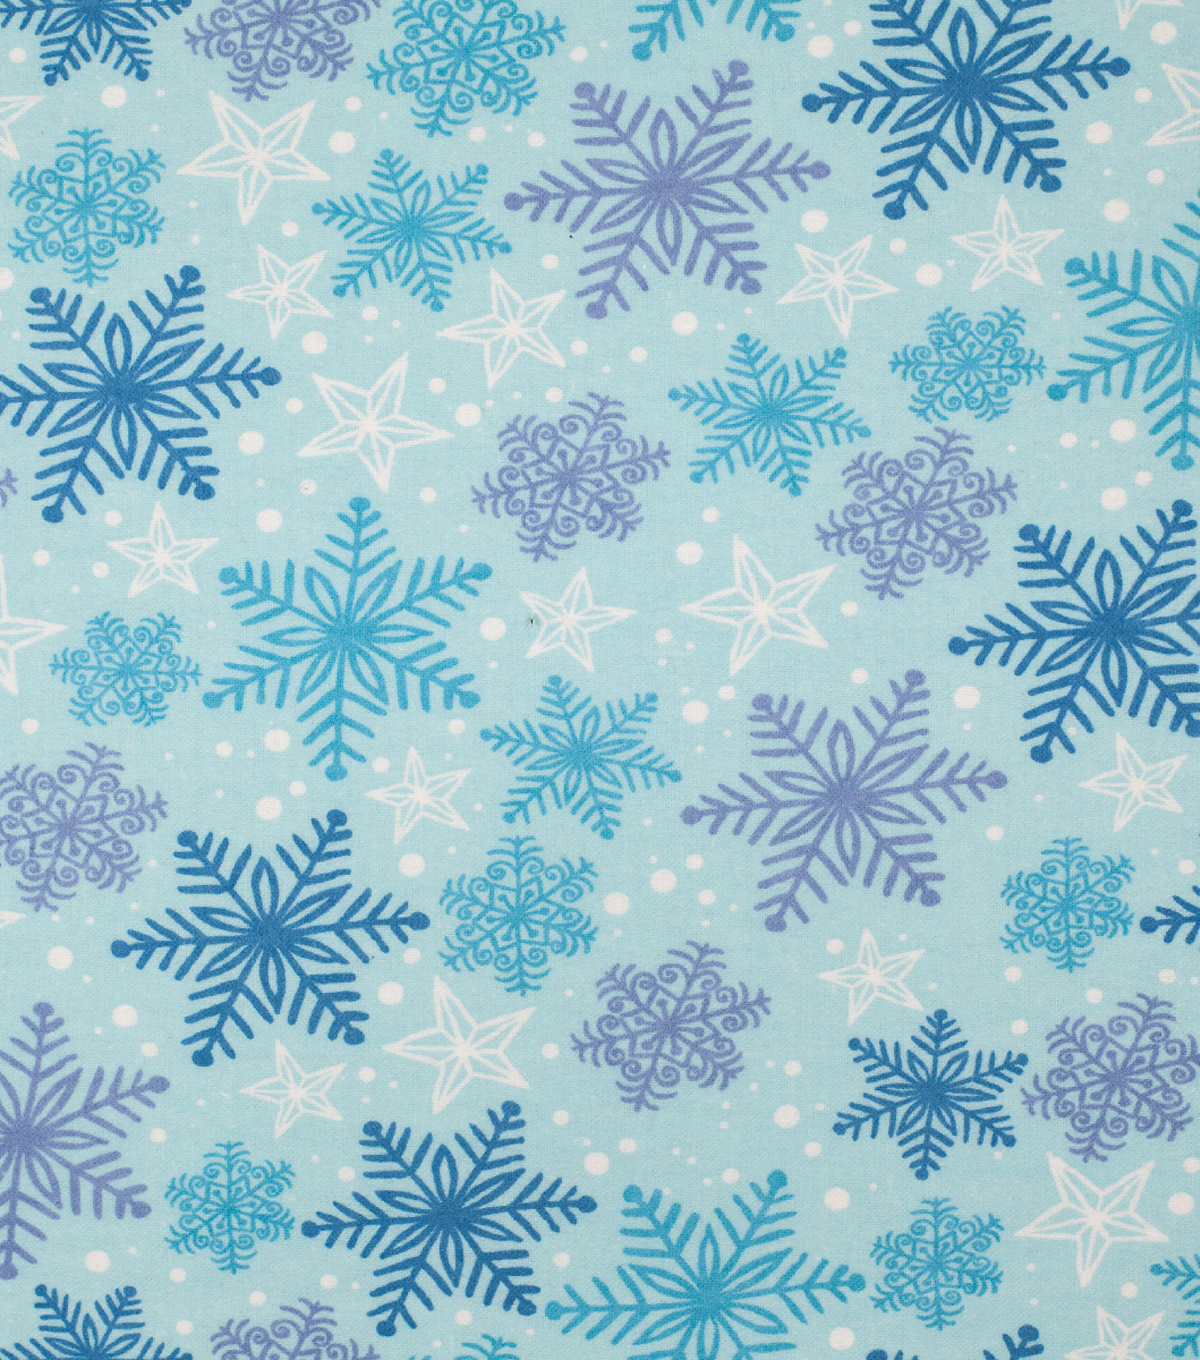 Super Snuggle Flannel Fabric-Blue & Purple Snowflakes